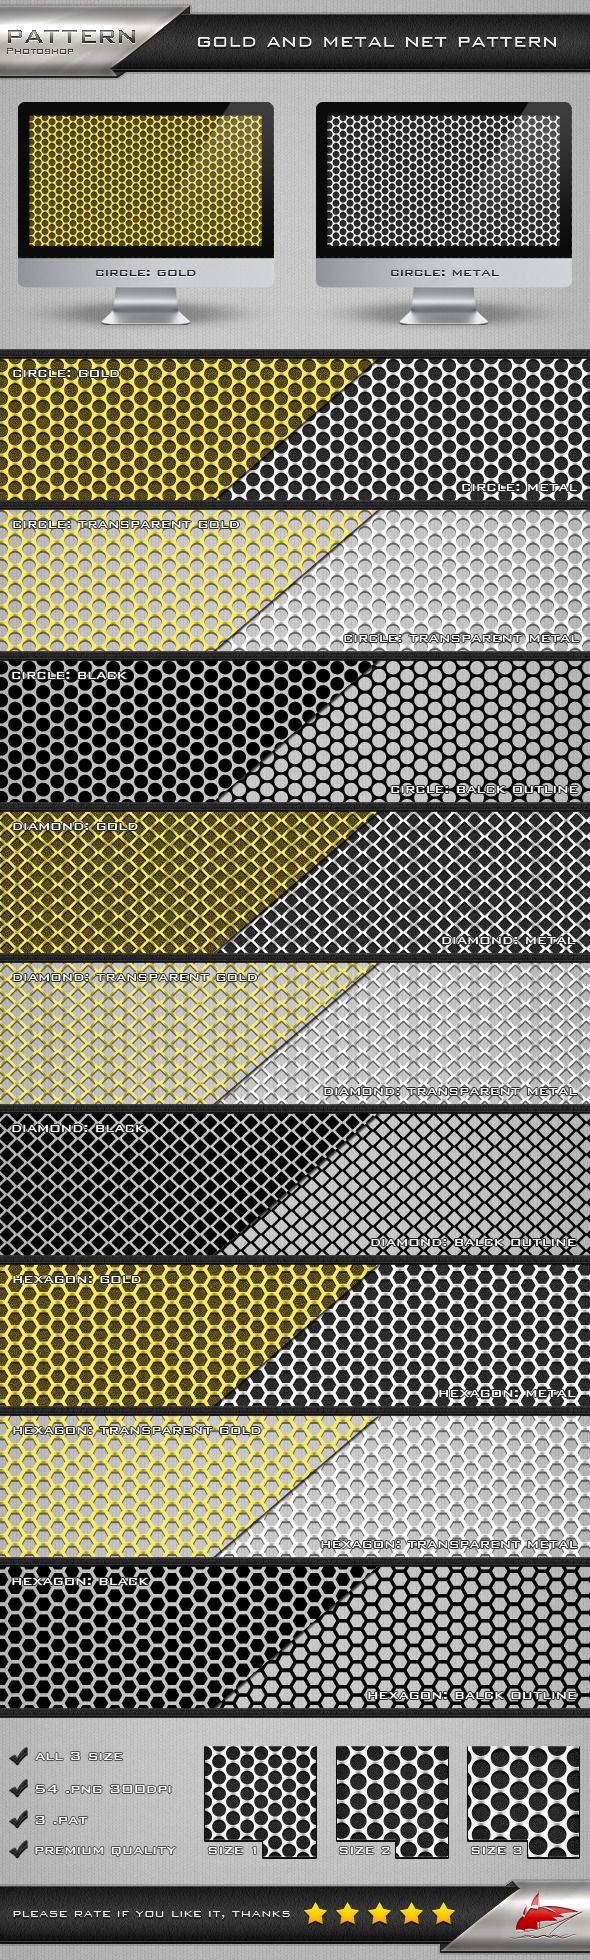 Gold and Metal Net Pattern - Textures / Fills / Patterns Photoshop